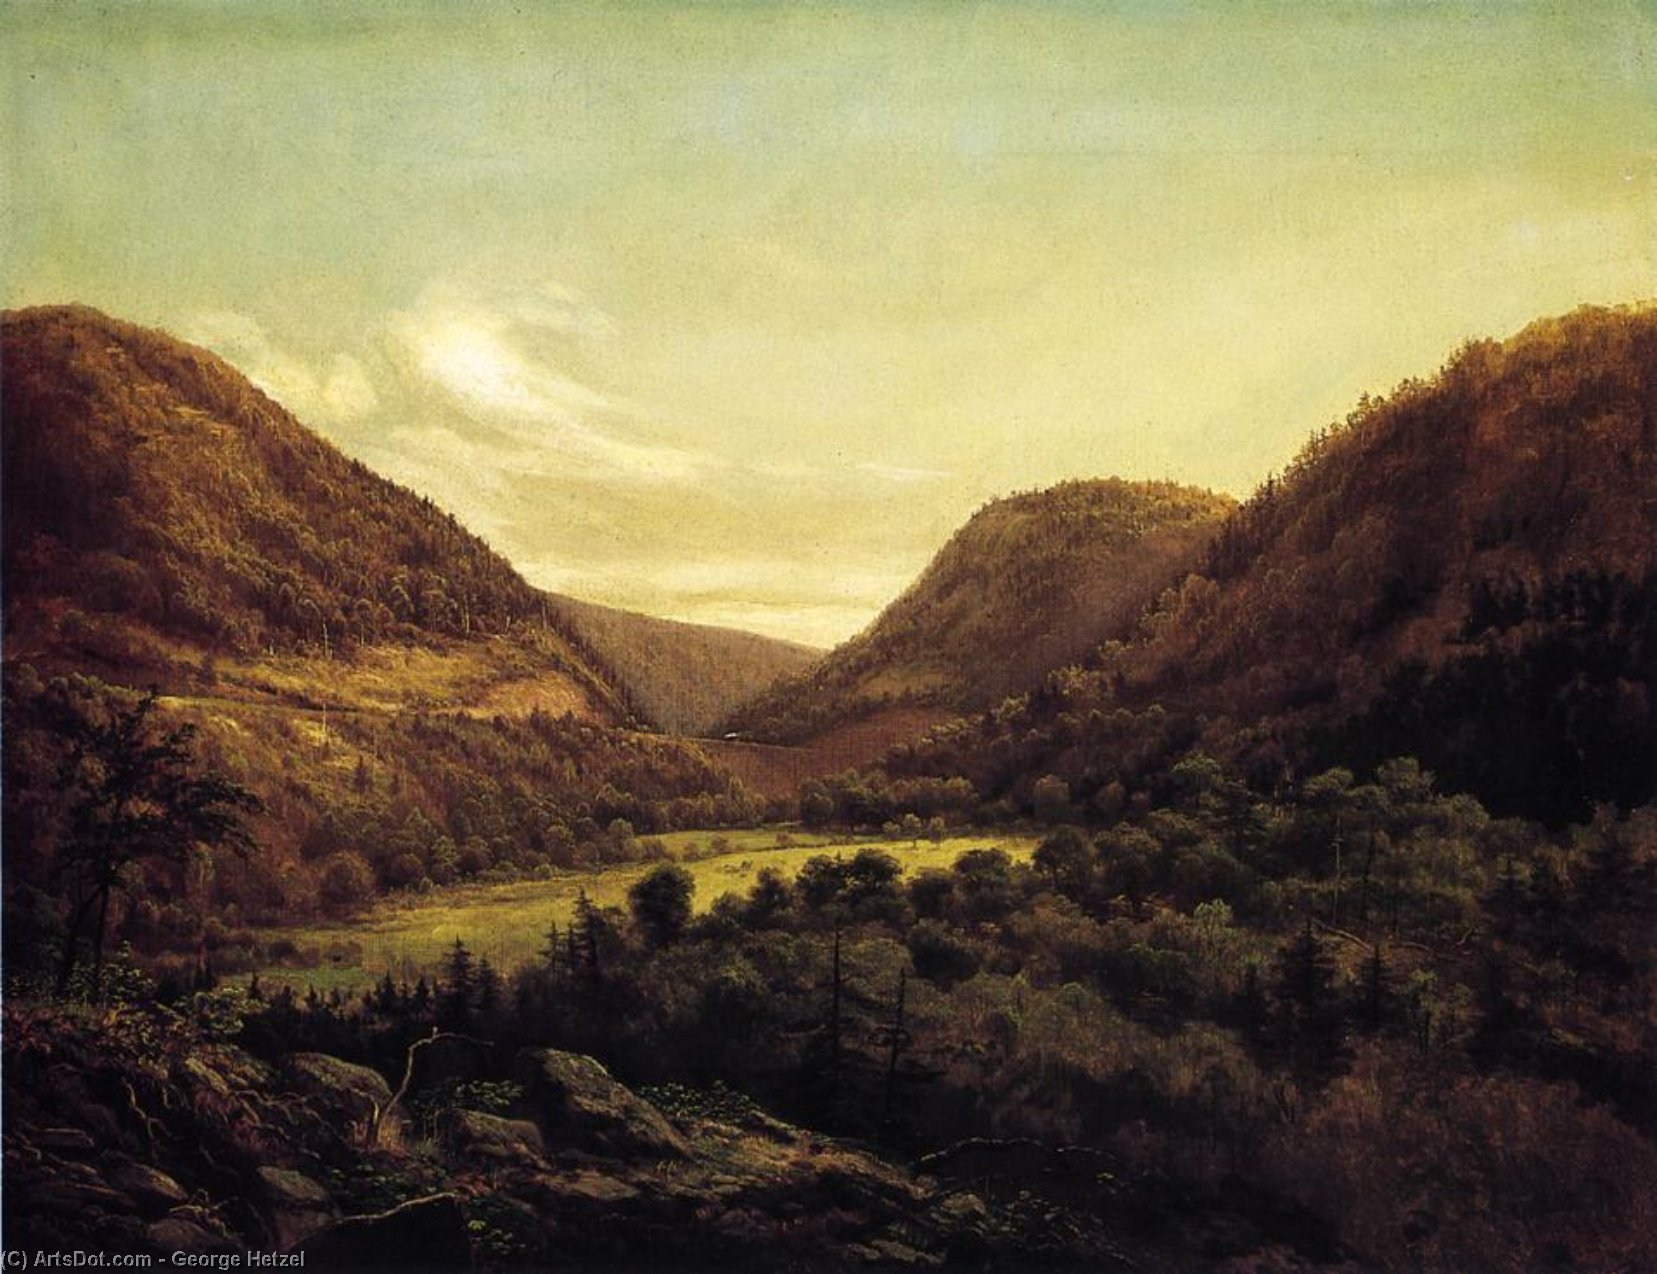 Horseshoe Bend, Oil On Canvas by George Hetzel (1826-1899, France)